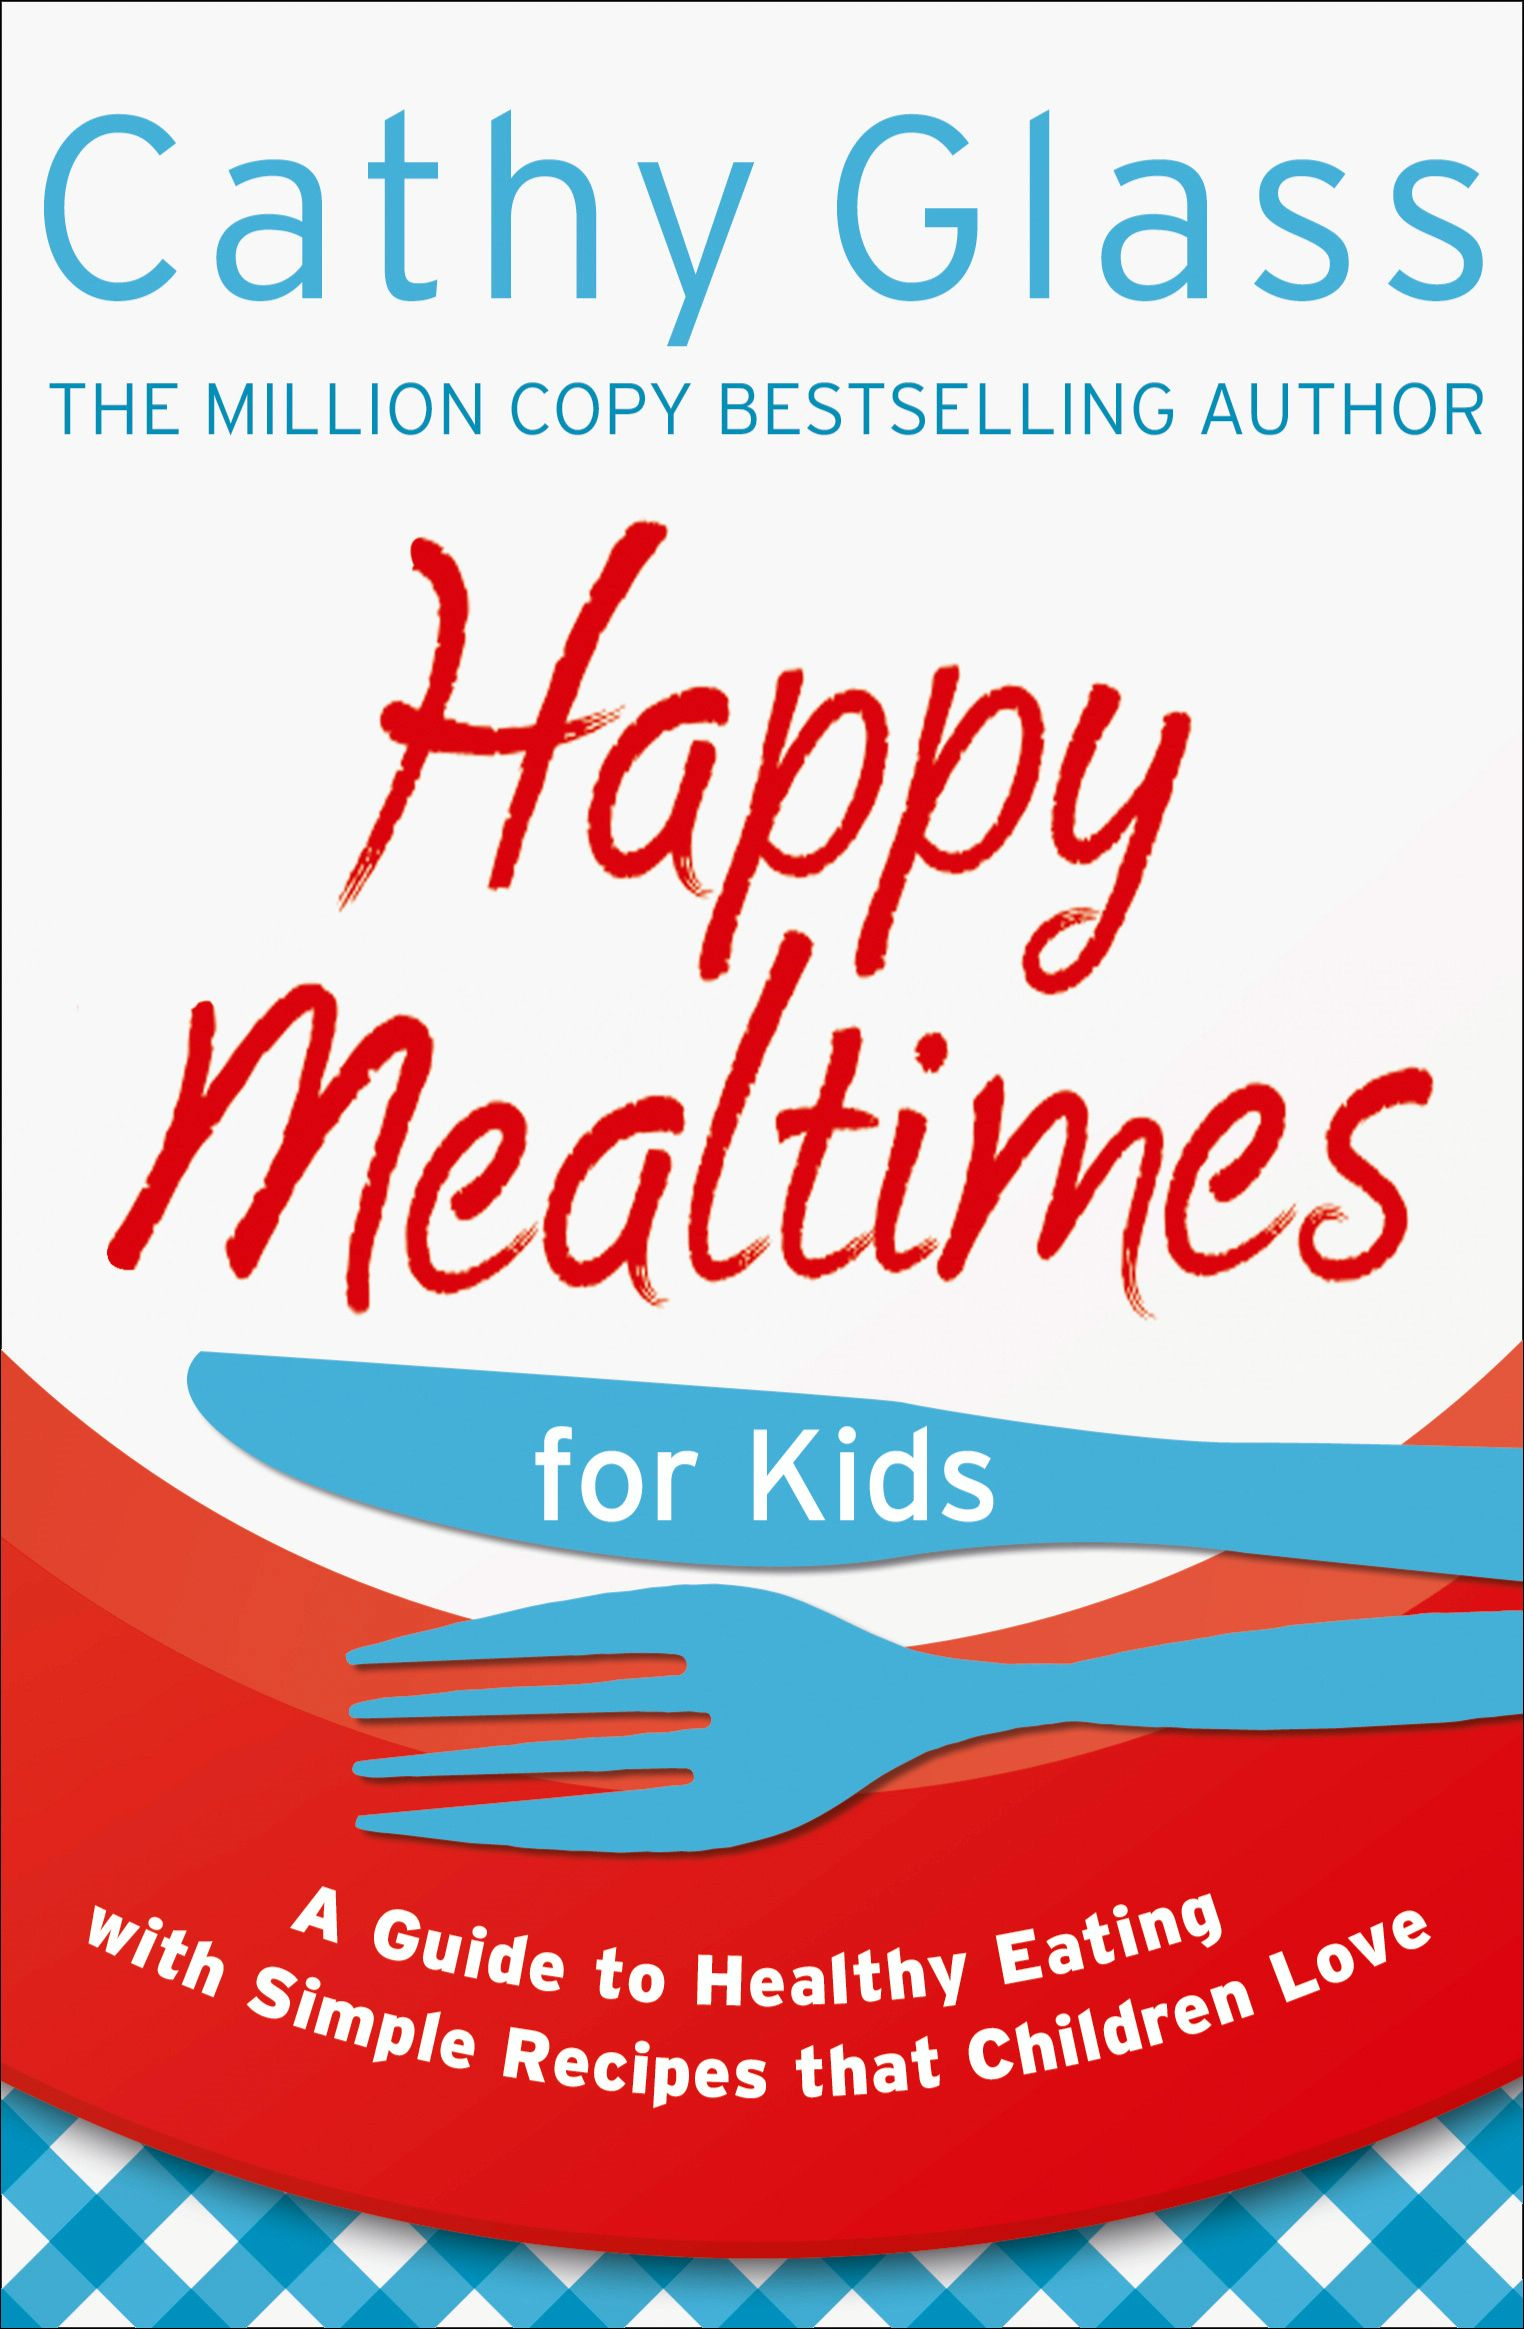 Happy Mealtimes for Kids: A Guide To Making Healthy Meals That Children Love